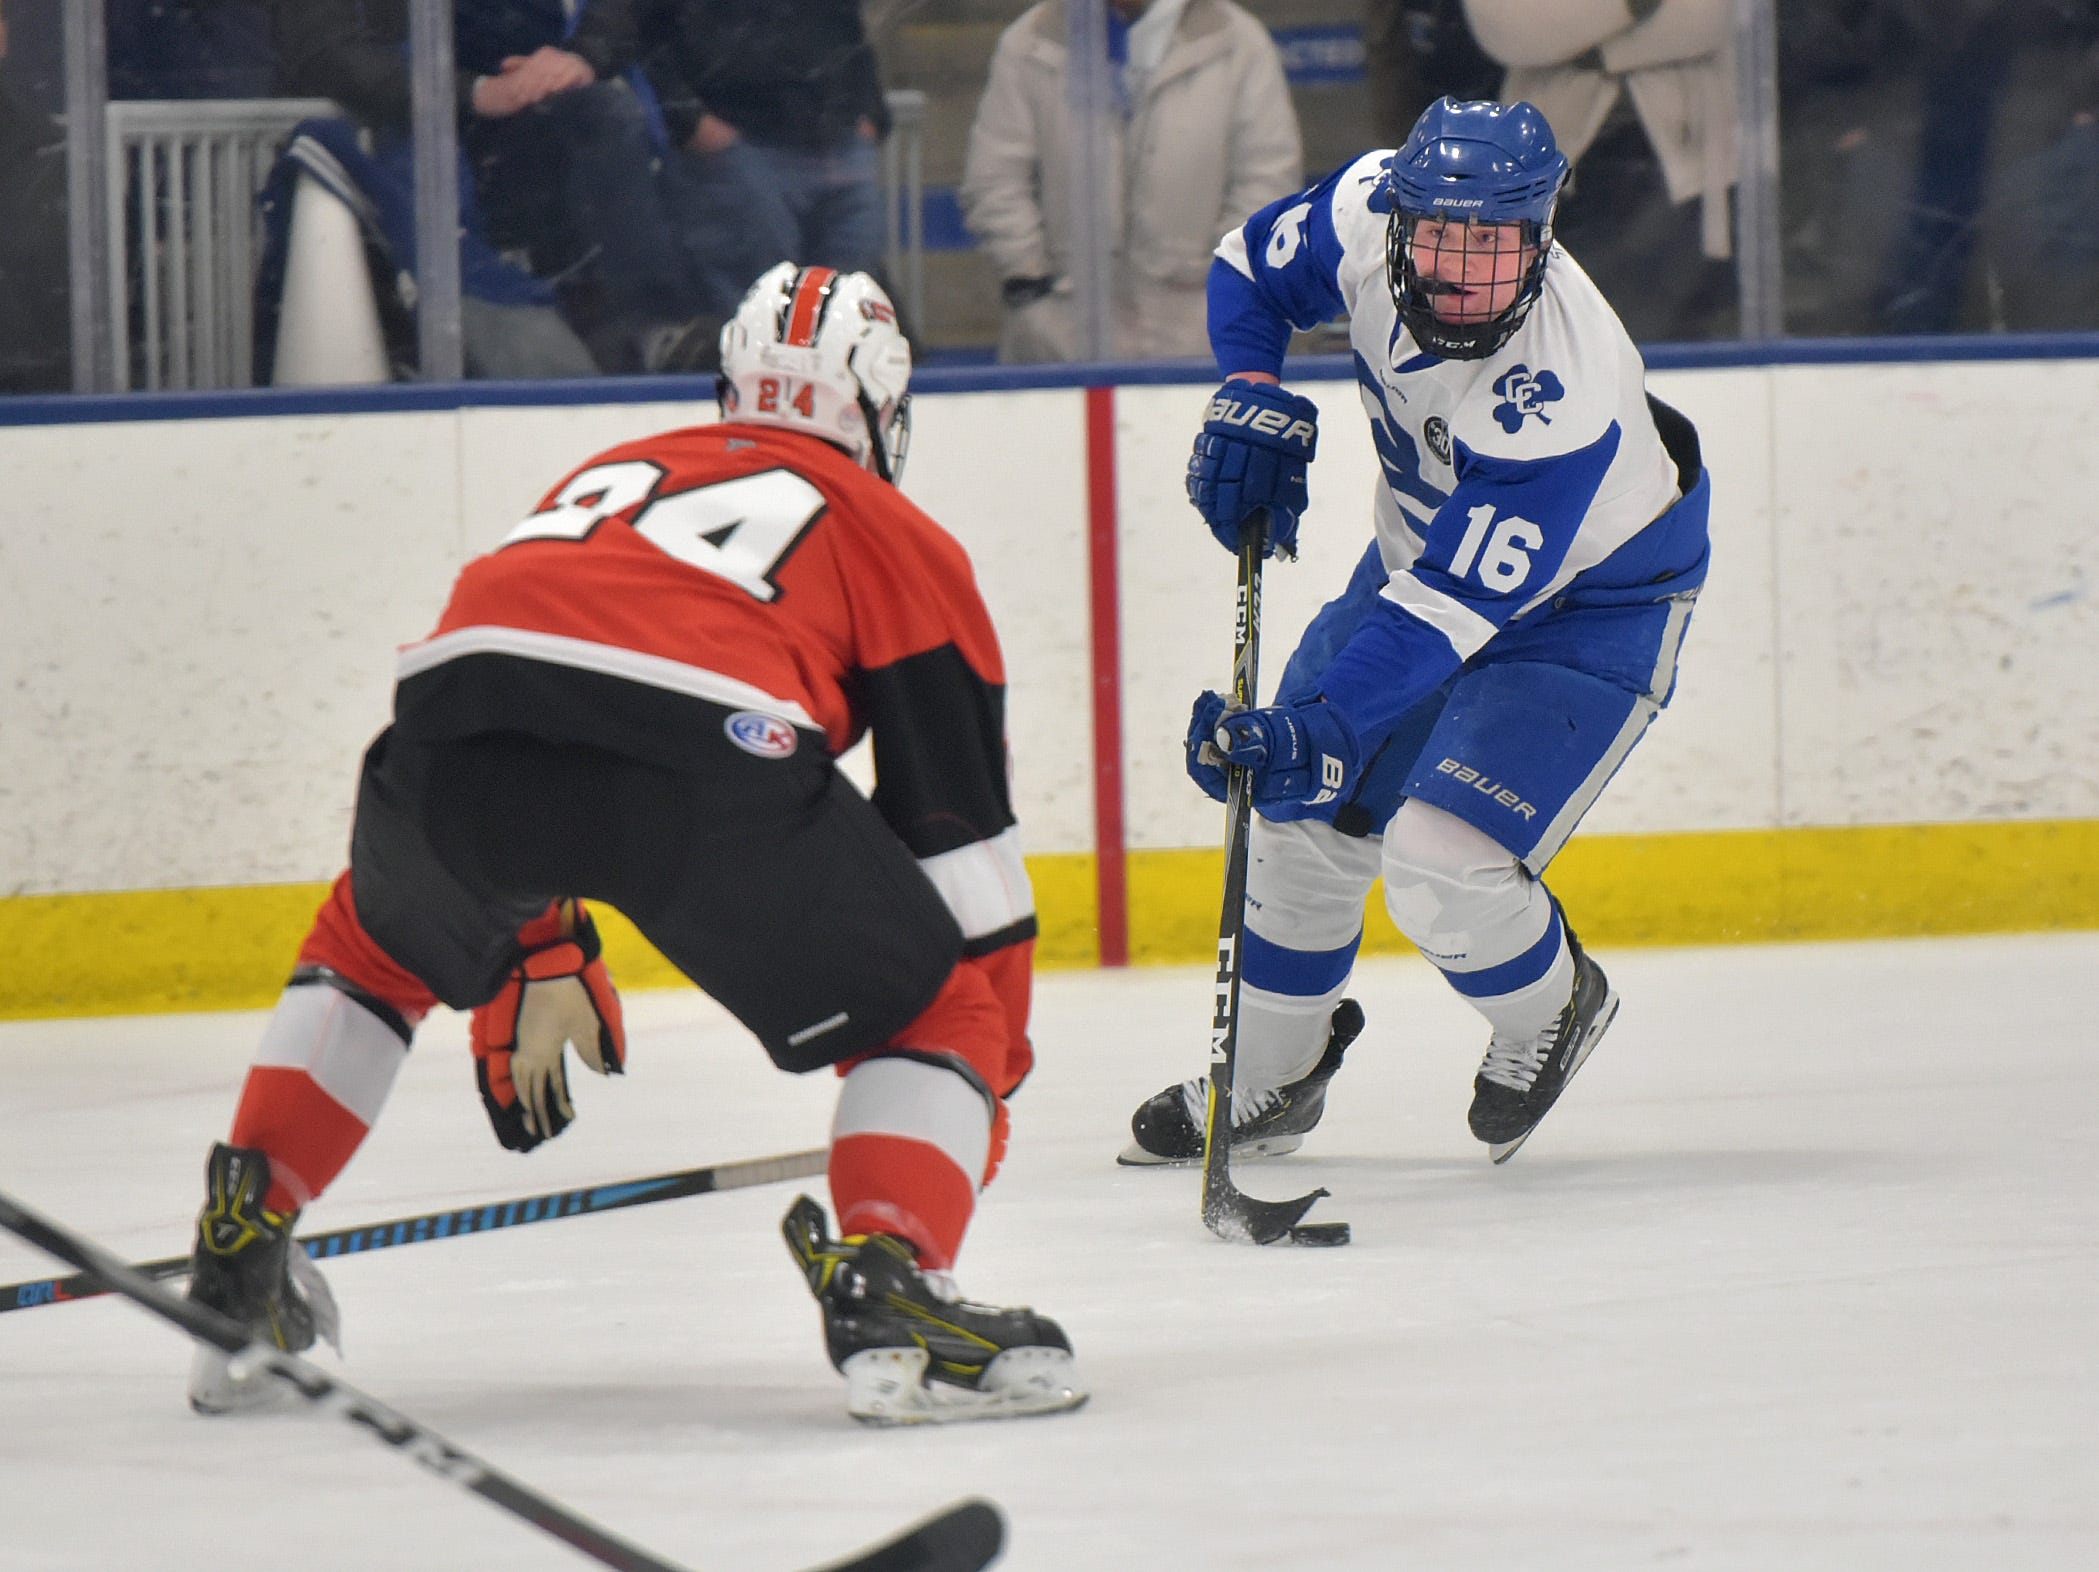 CC forward Dylan Dooley (16) has his eye on a shot, but he has to get by Rice defense Clayton Kramm (24).